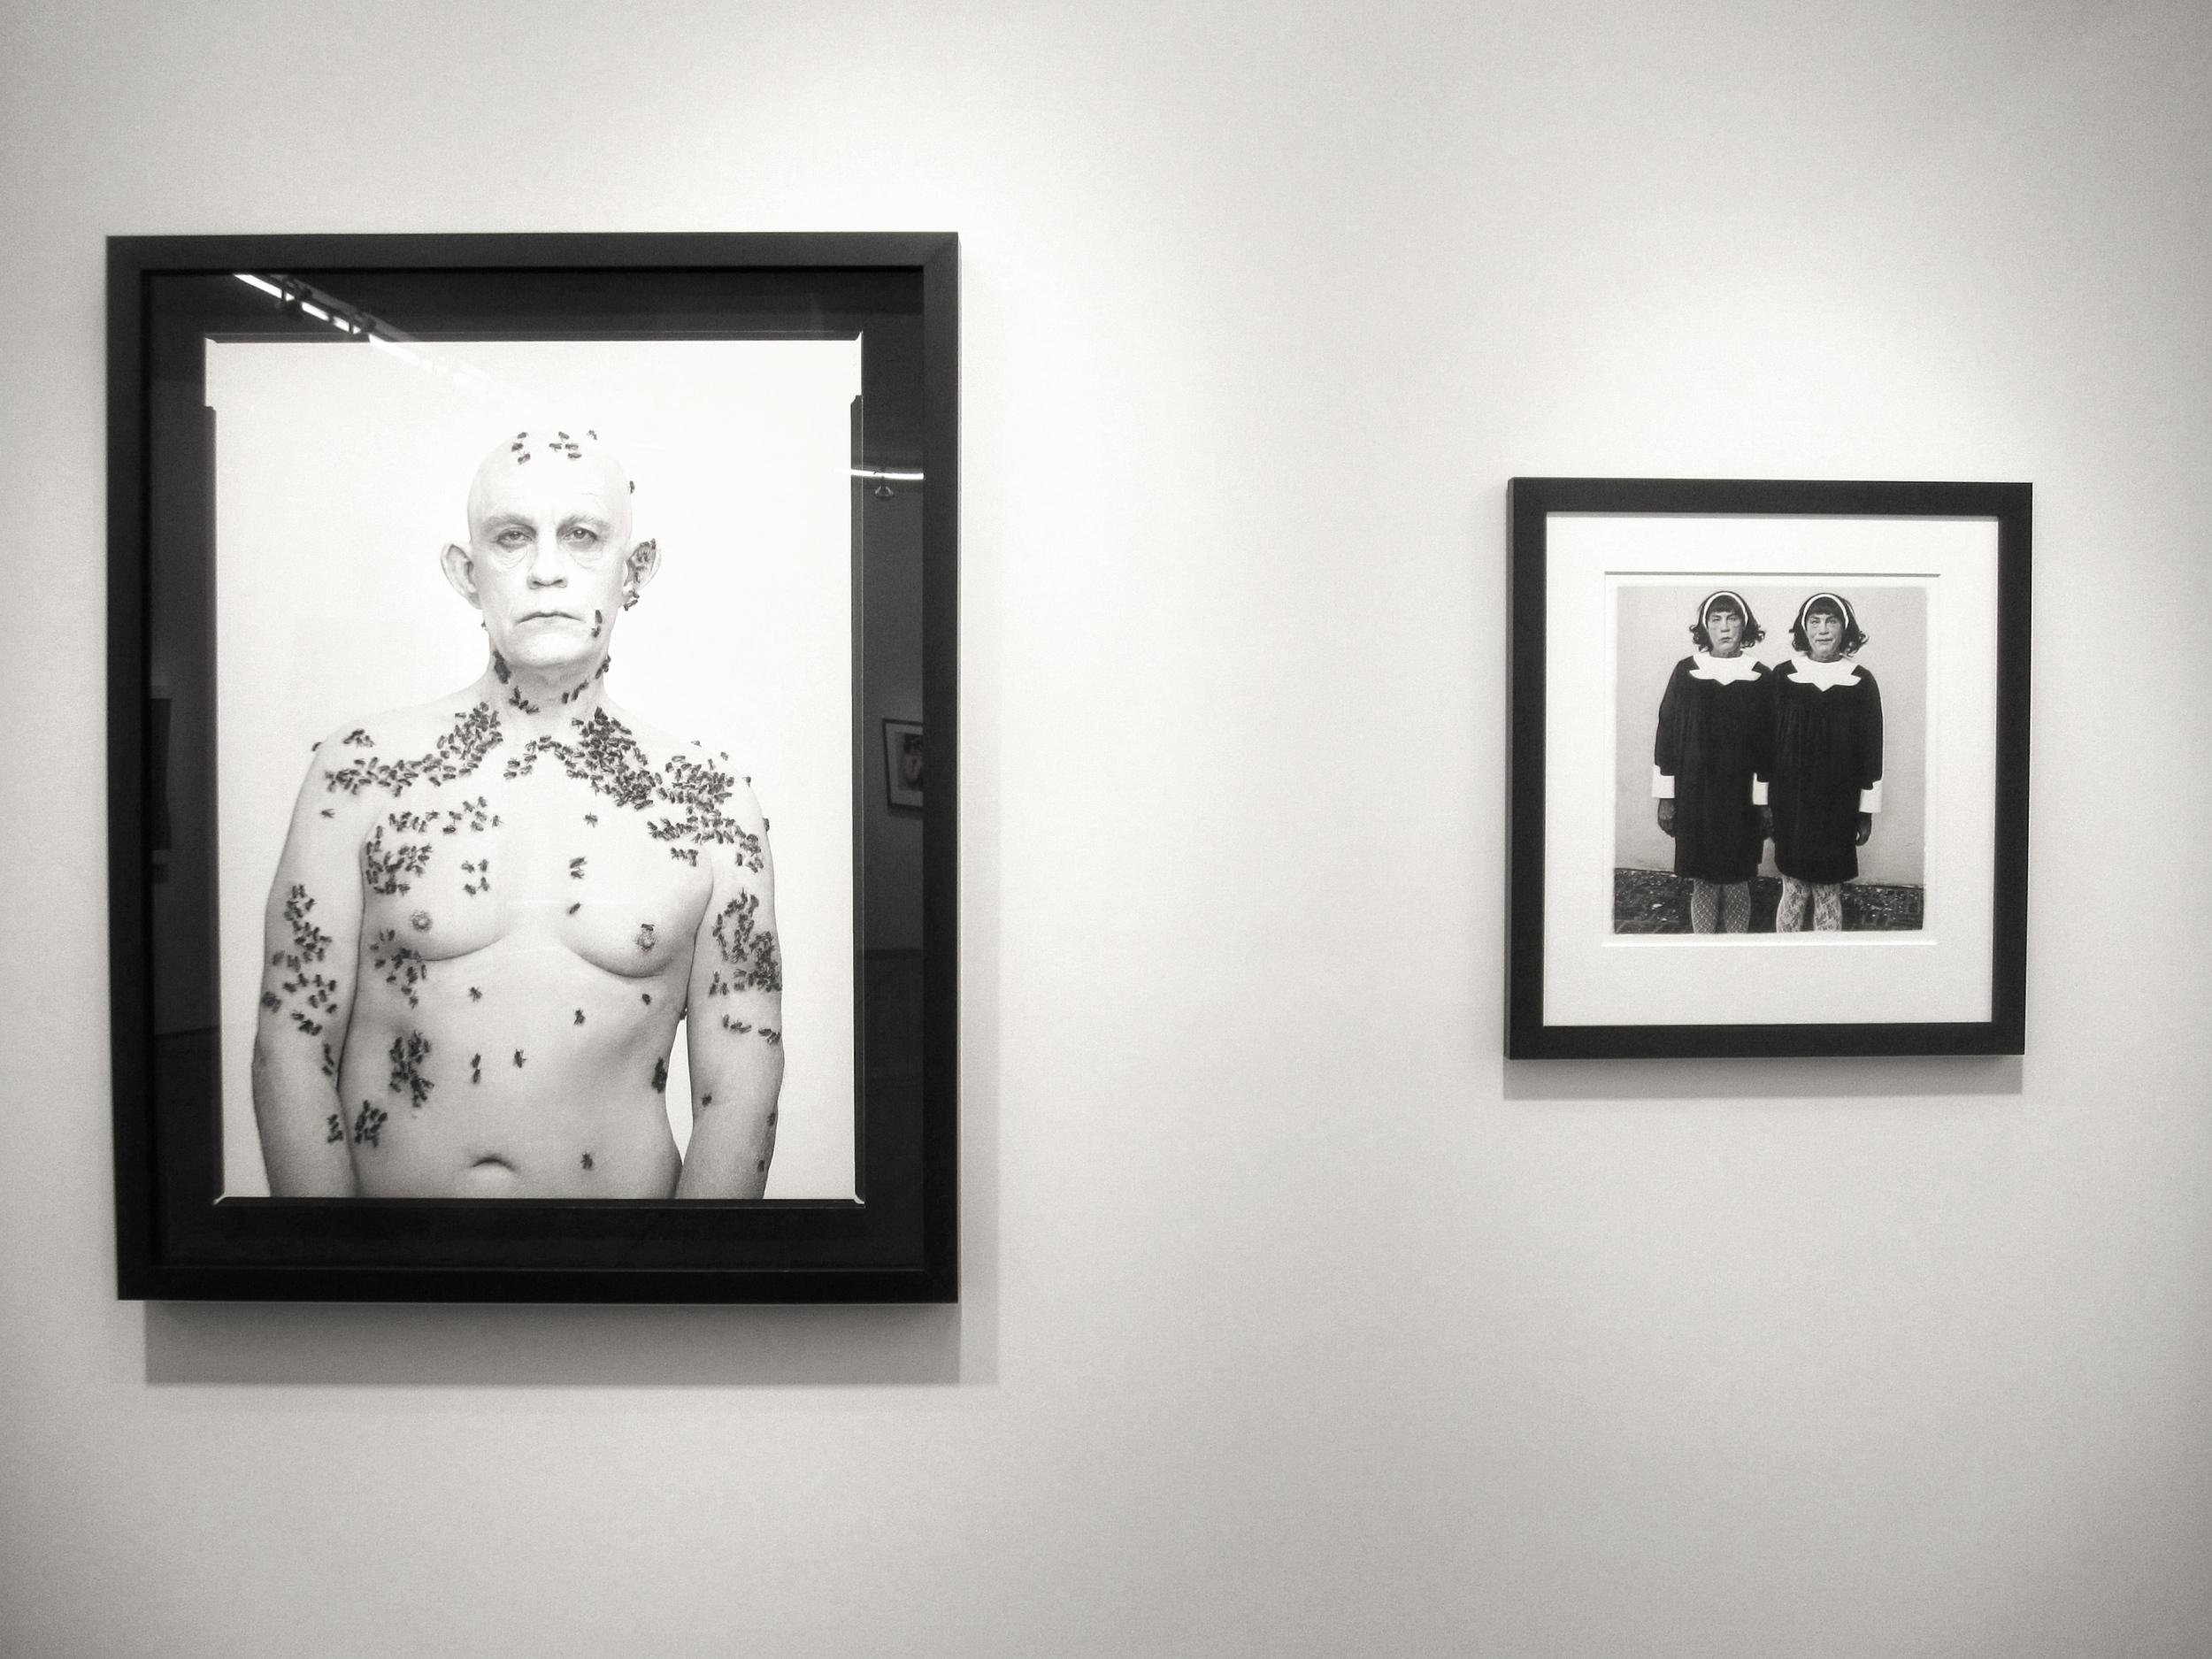 Sandro Miller, photographs from Malkovich,   Malkovich, Malkovich: Homage to Photographic Masters